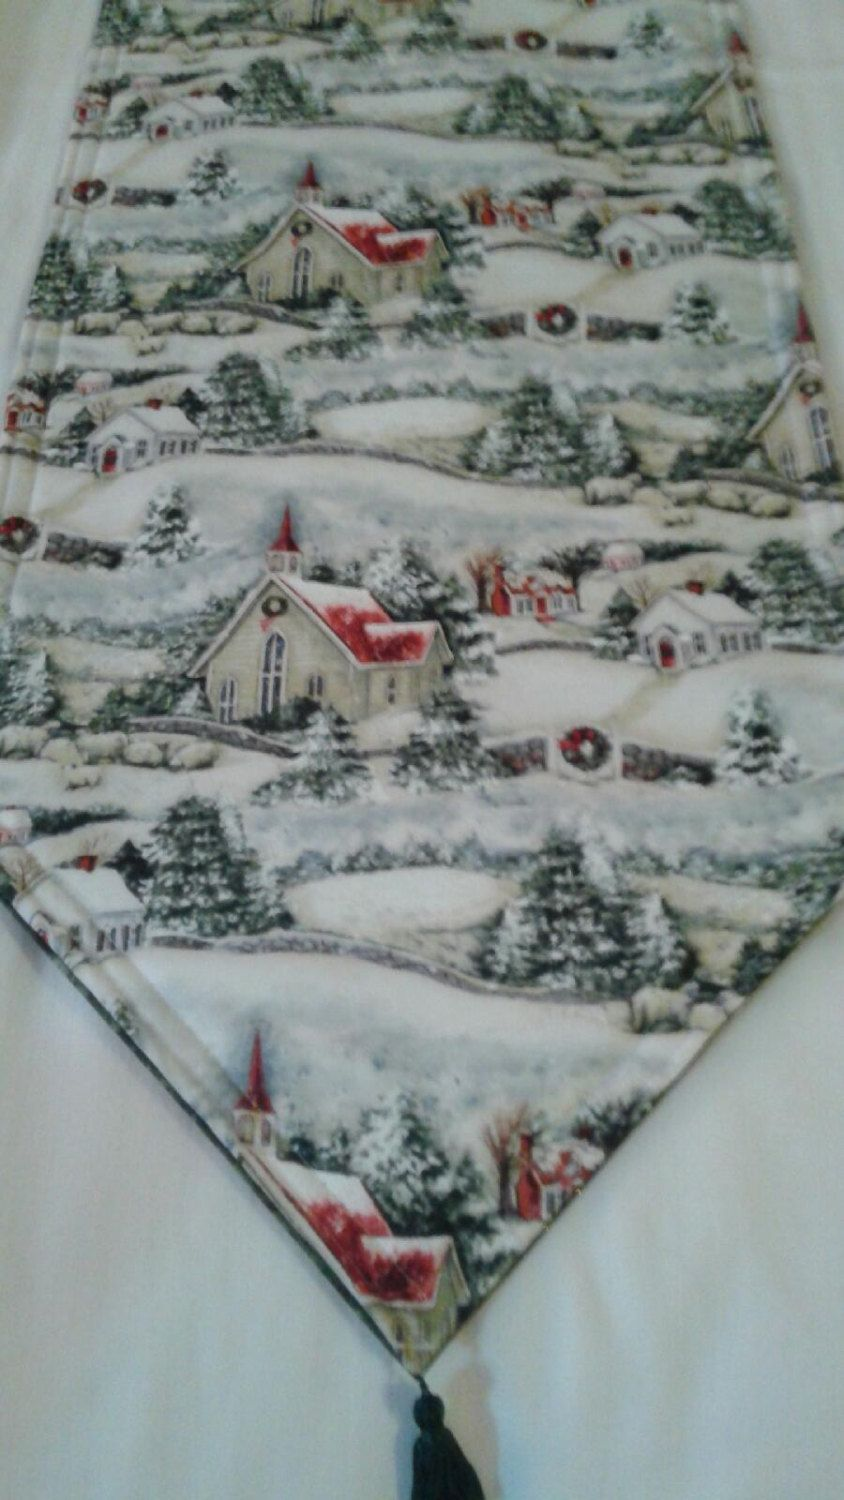 Winter Wonderland Table Runner Handmade 72x14 Padded and Reversible by freemansalesgirl on Etsy